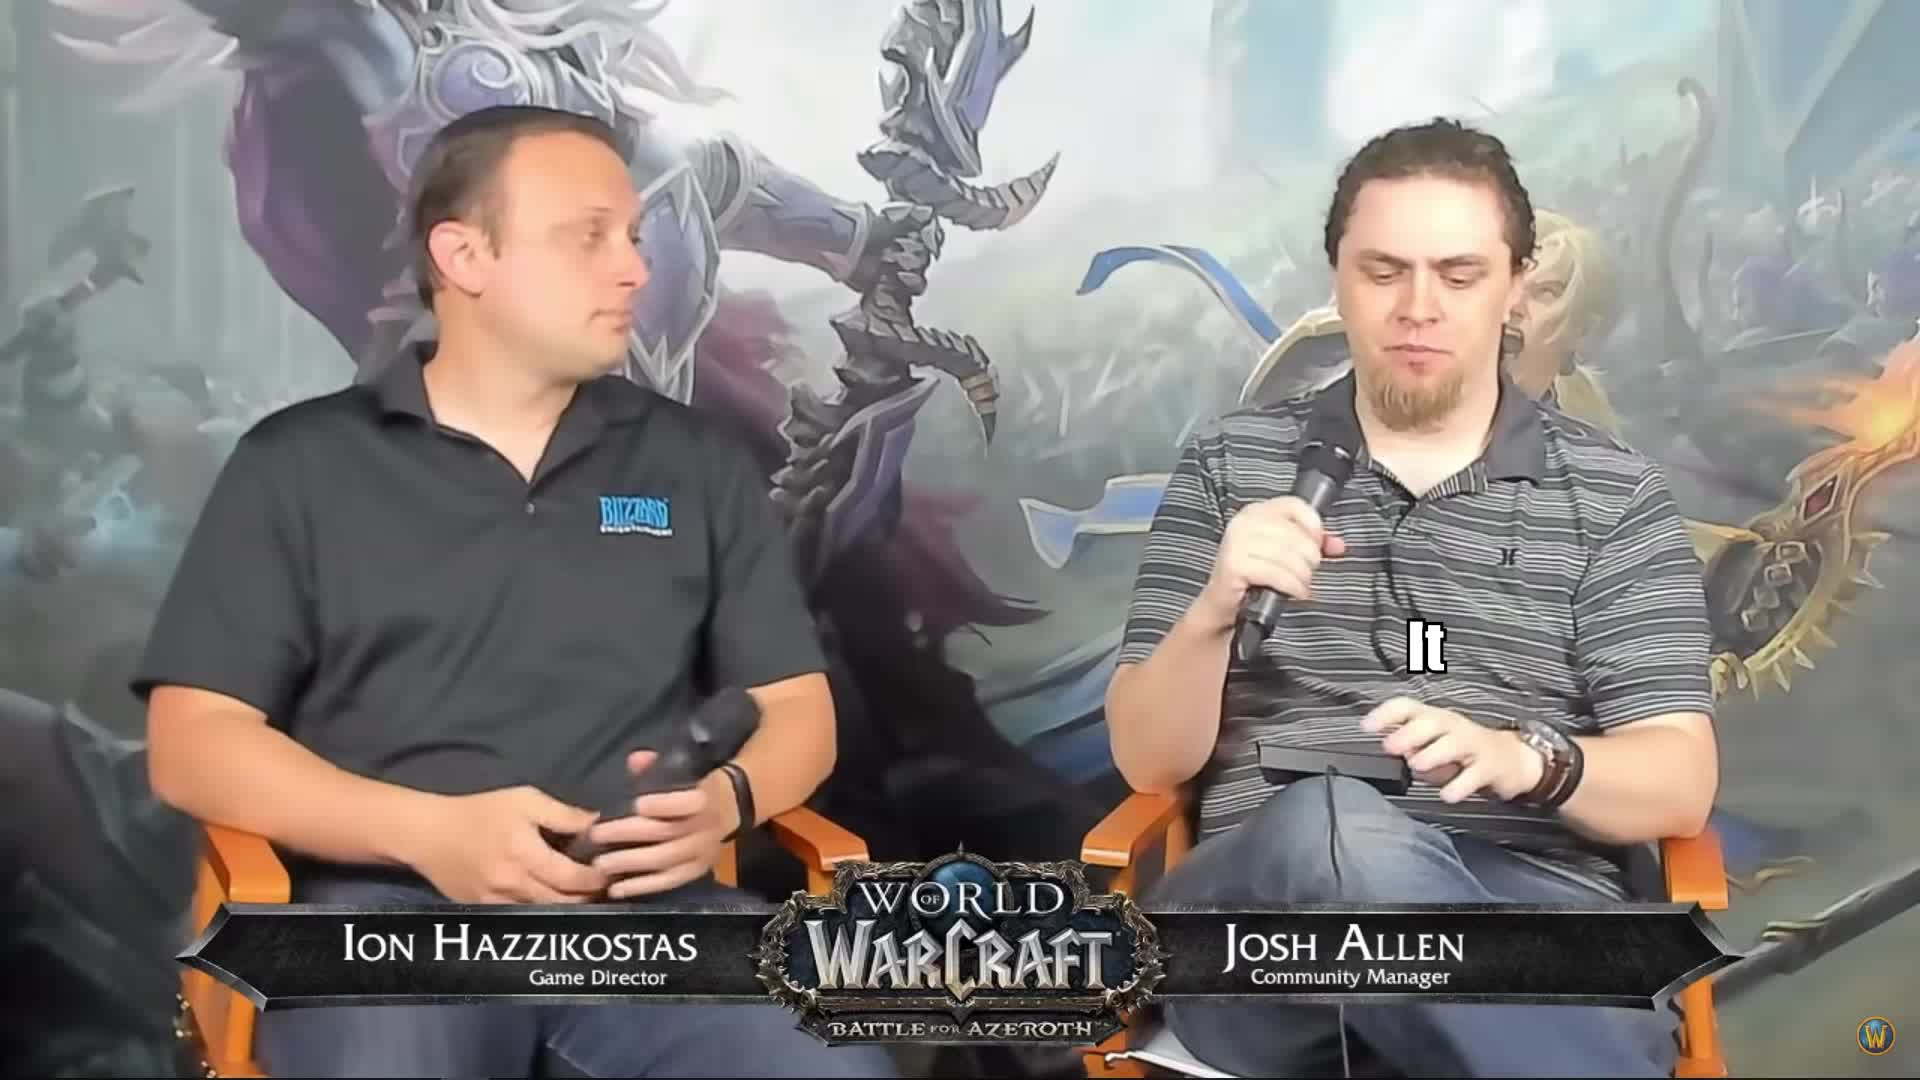 awkward, funny, gaming, meme, world of warcraft, wow, The most awkward thing I've ever seen GIFs